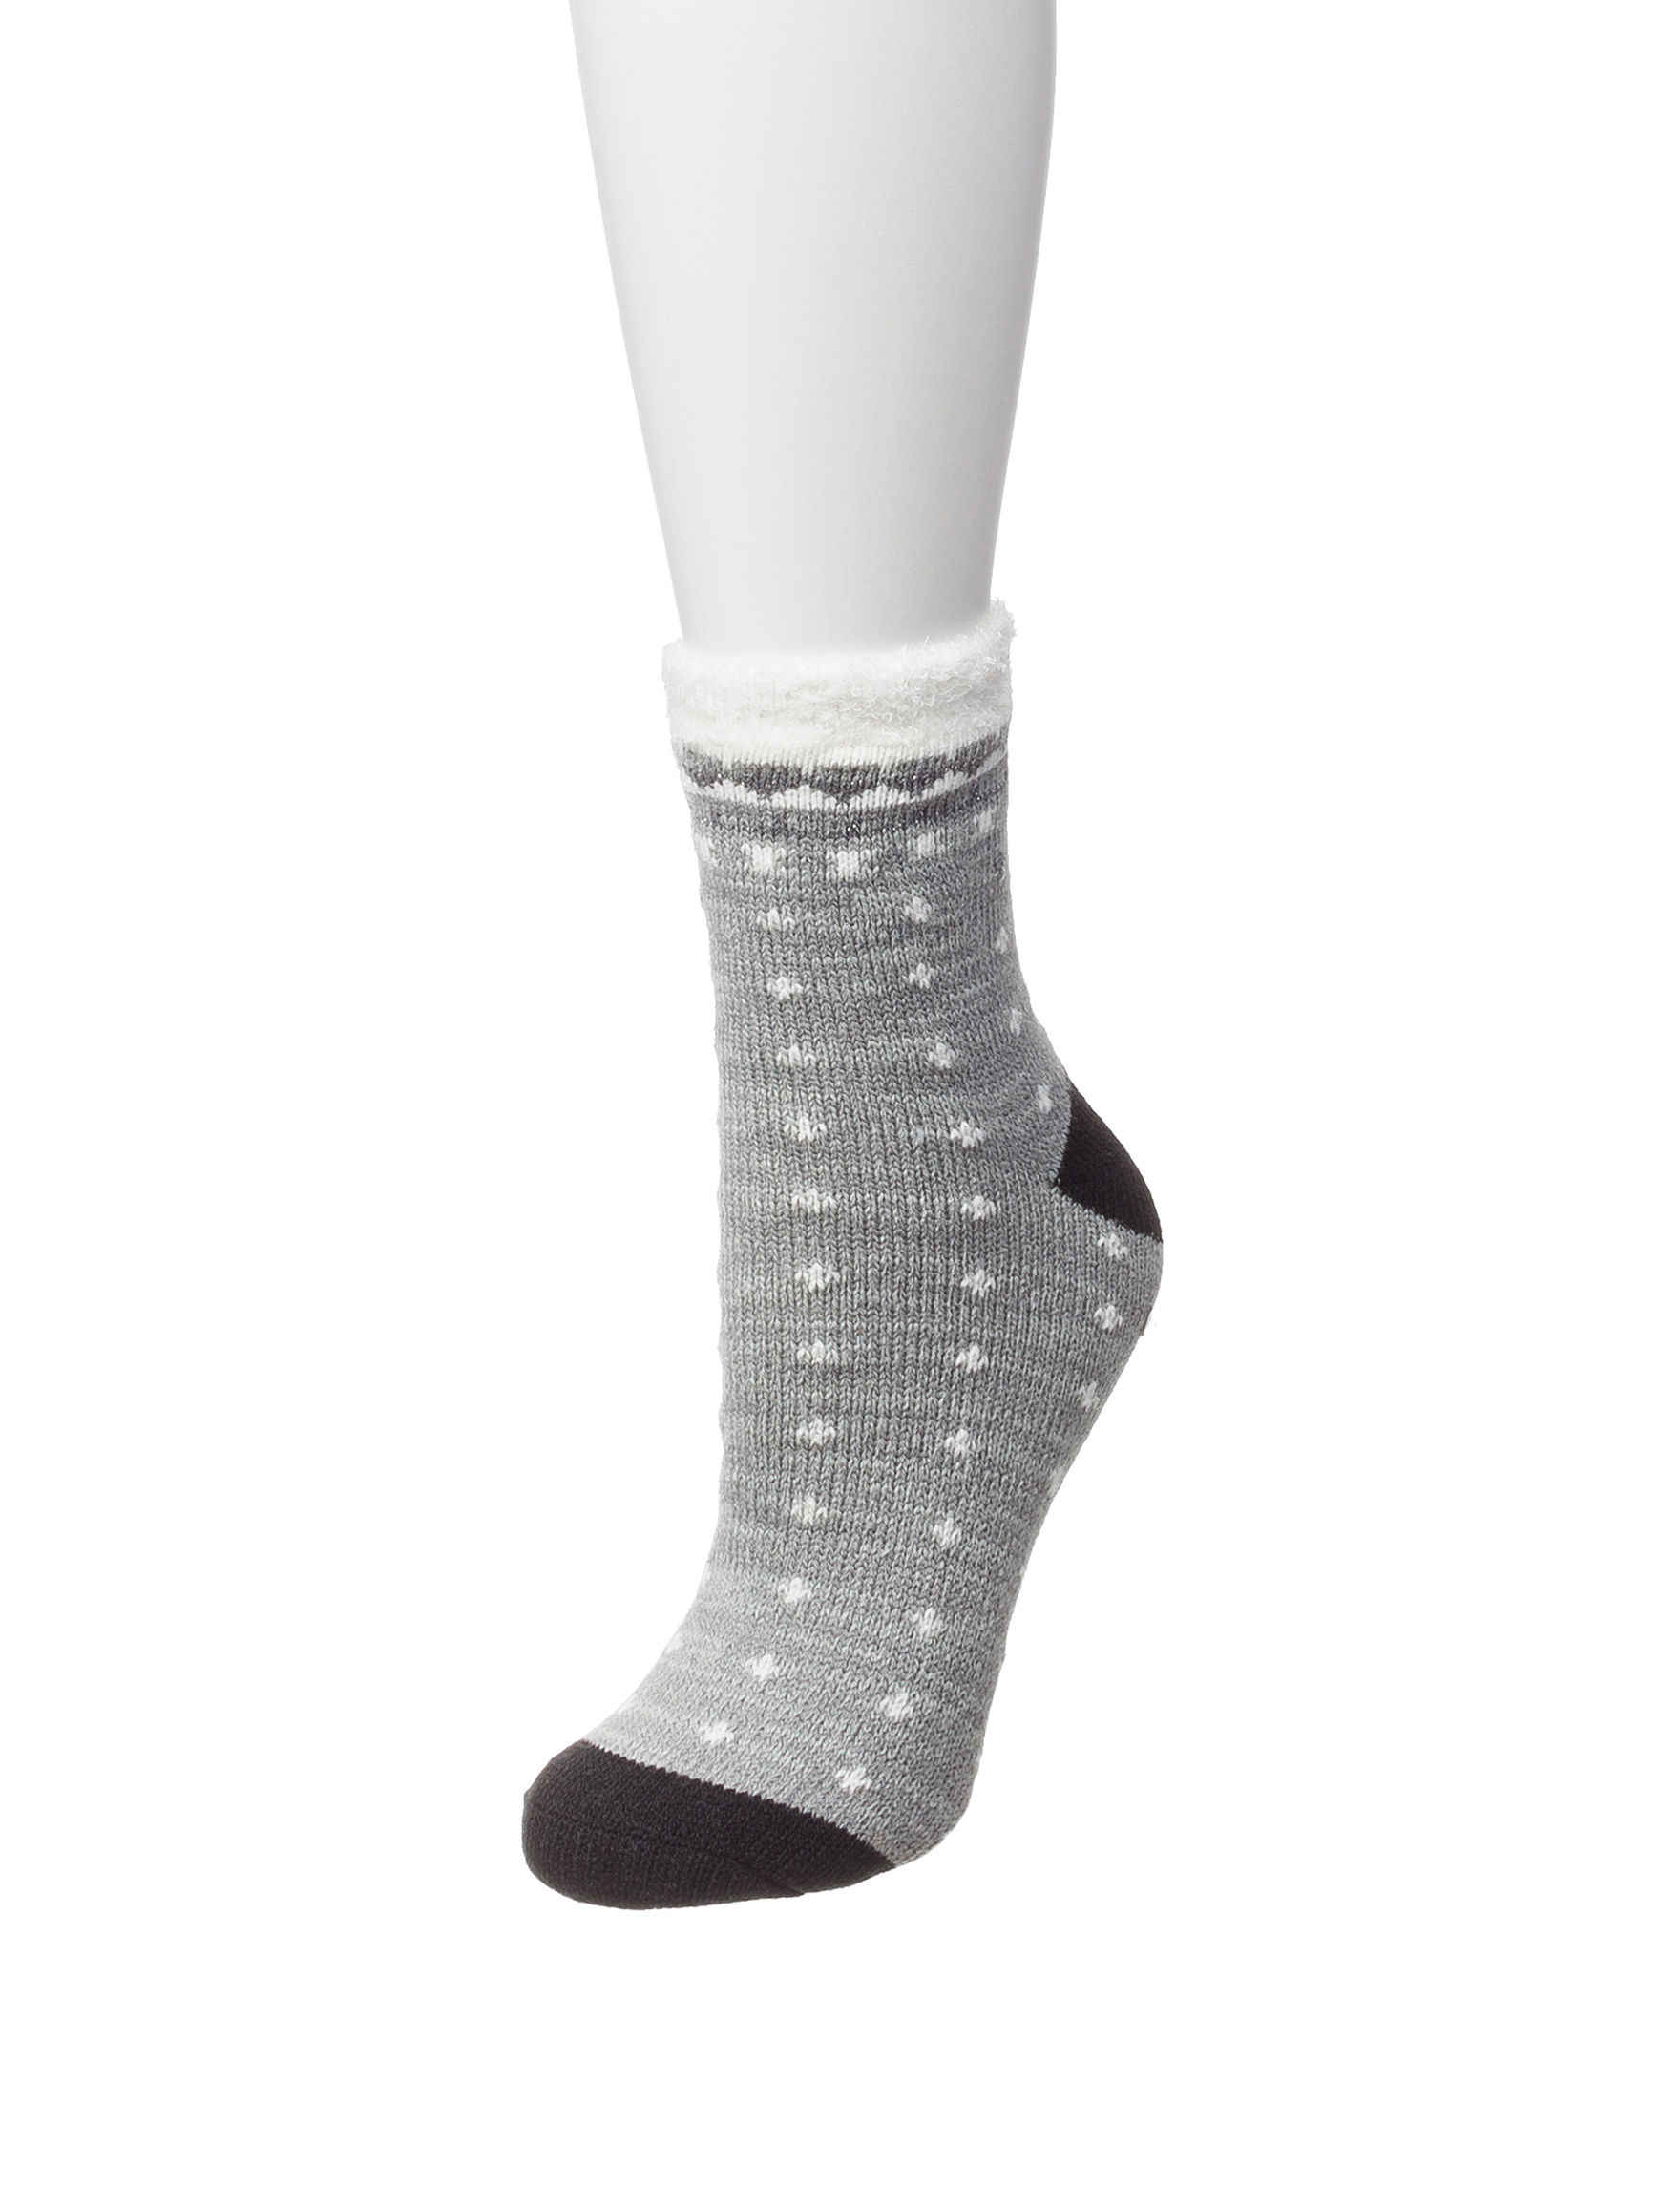 Signature Studio Black Socks